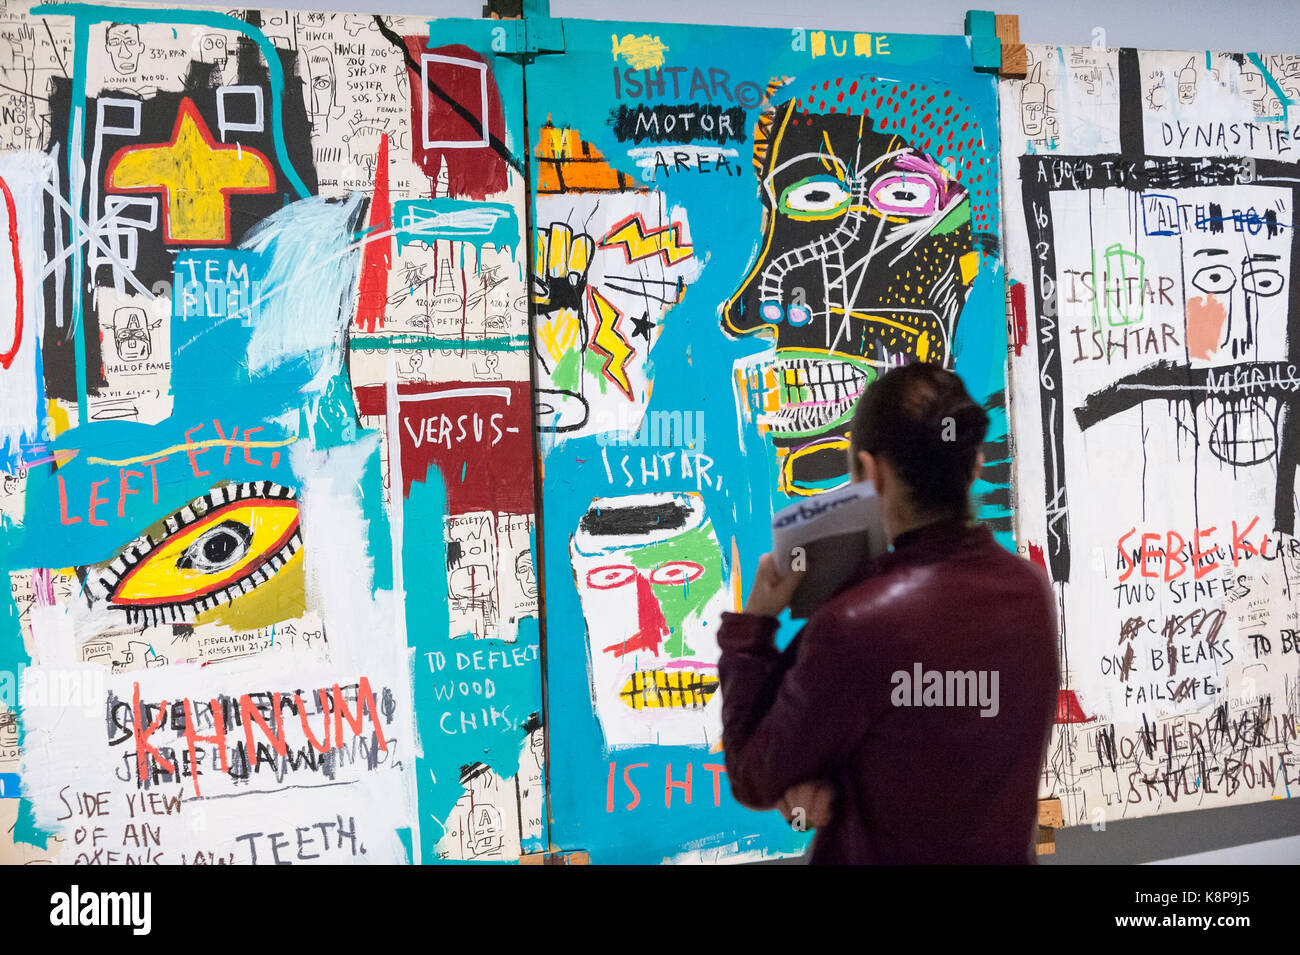 London, UK.  20 September 2017. A woman views 'Ishtar', 1983, by Jean-Michel Basquiat. Preview of 'Basquiat: - Stock Image